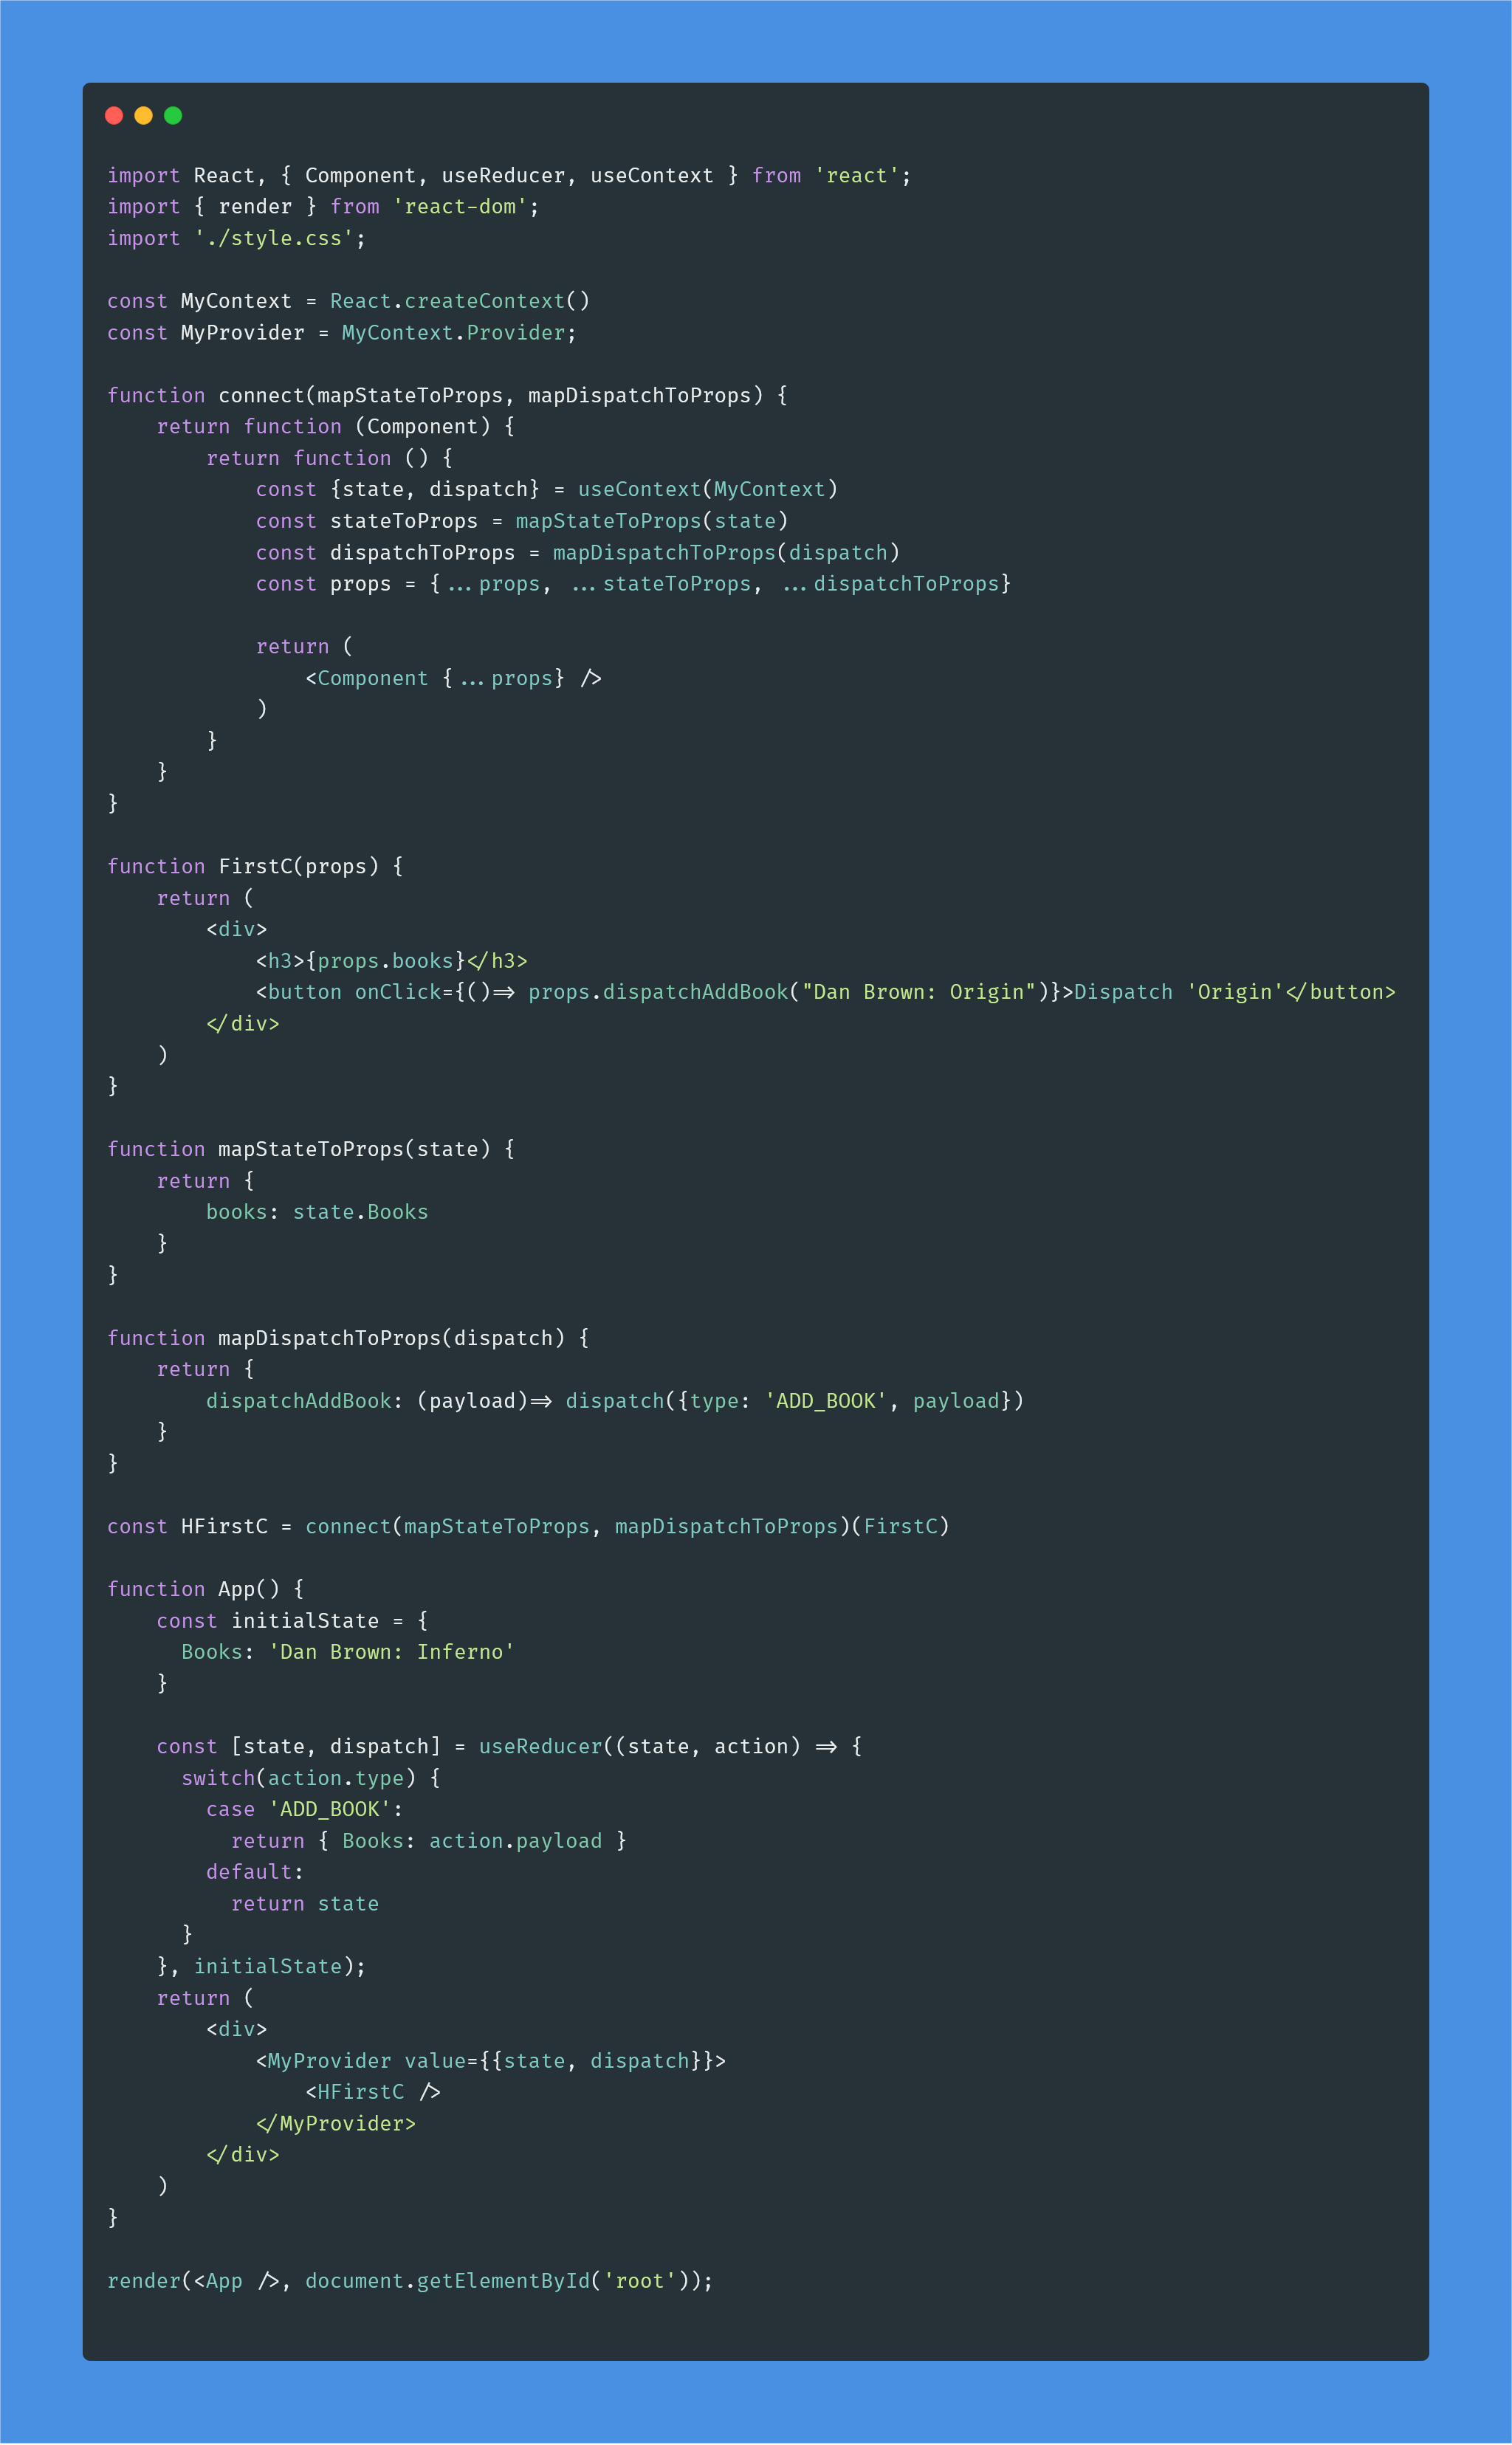 Build Your Own React-Redux Using useReducer and useContext Hooks